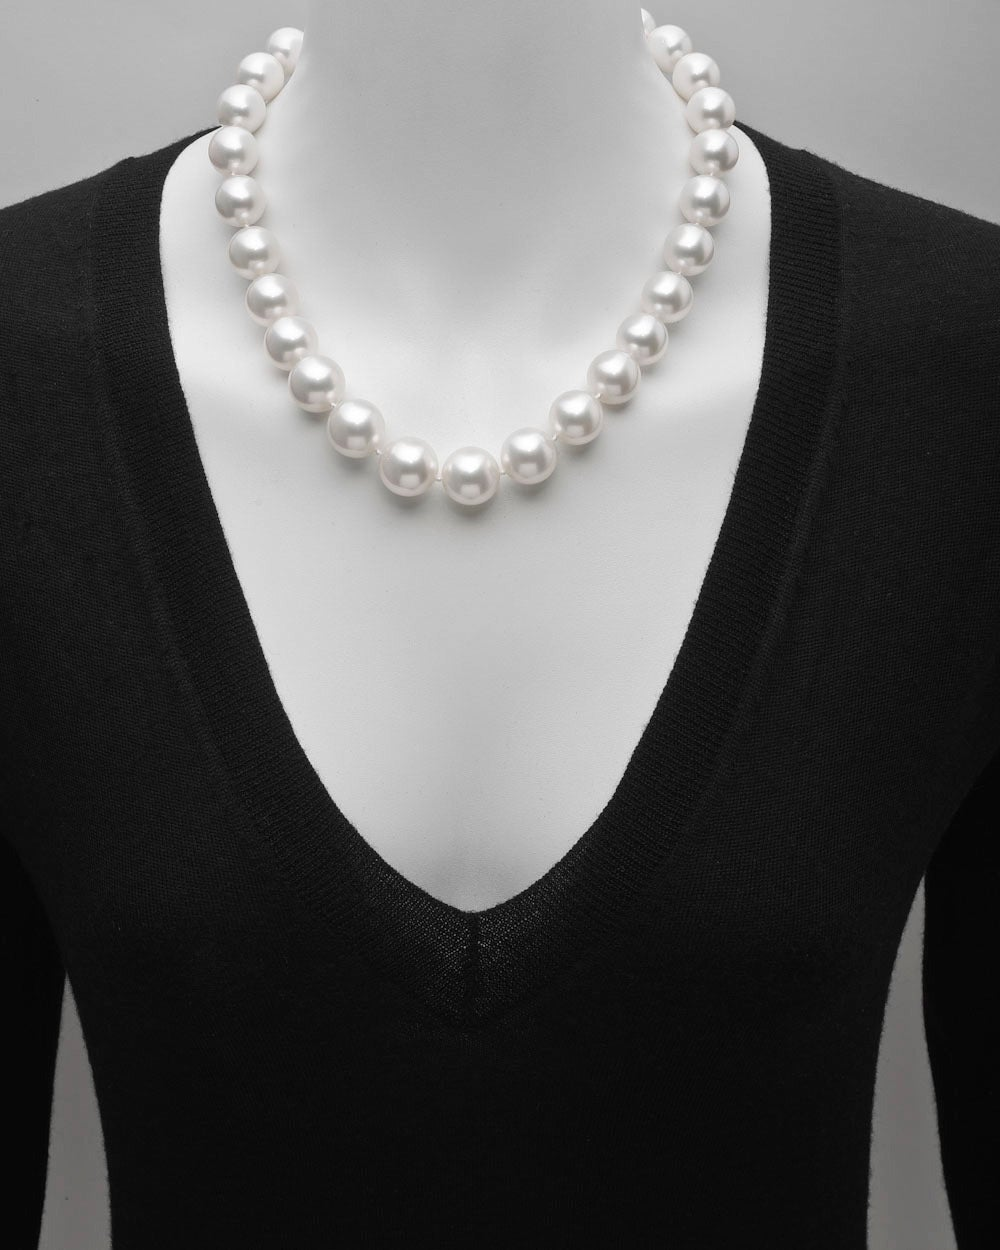 """Single strand South Sea pearl necklace, composed of 29 fine South Sea cultured pearls, ranging from 14 to 16.8mm in diameter, strung on a silk cord, with a fluted oval-shaped clasp in 18k white gold accented by a row of round diamonds. 19.5"""""""